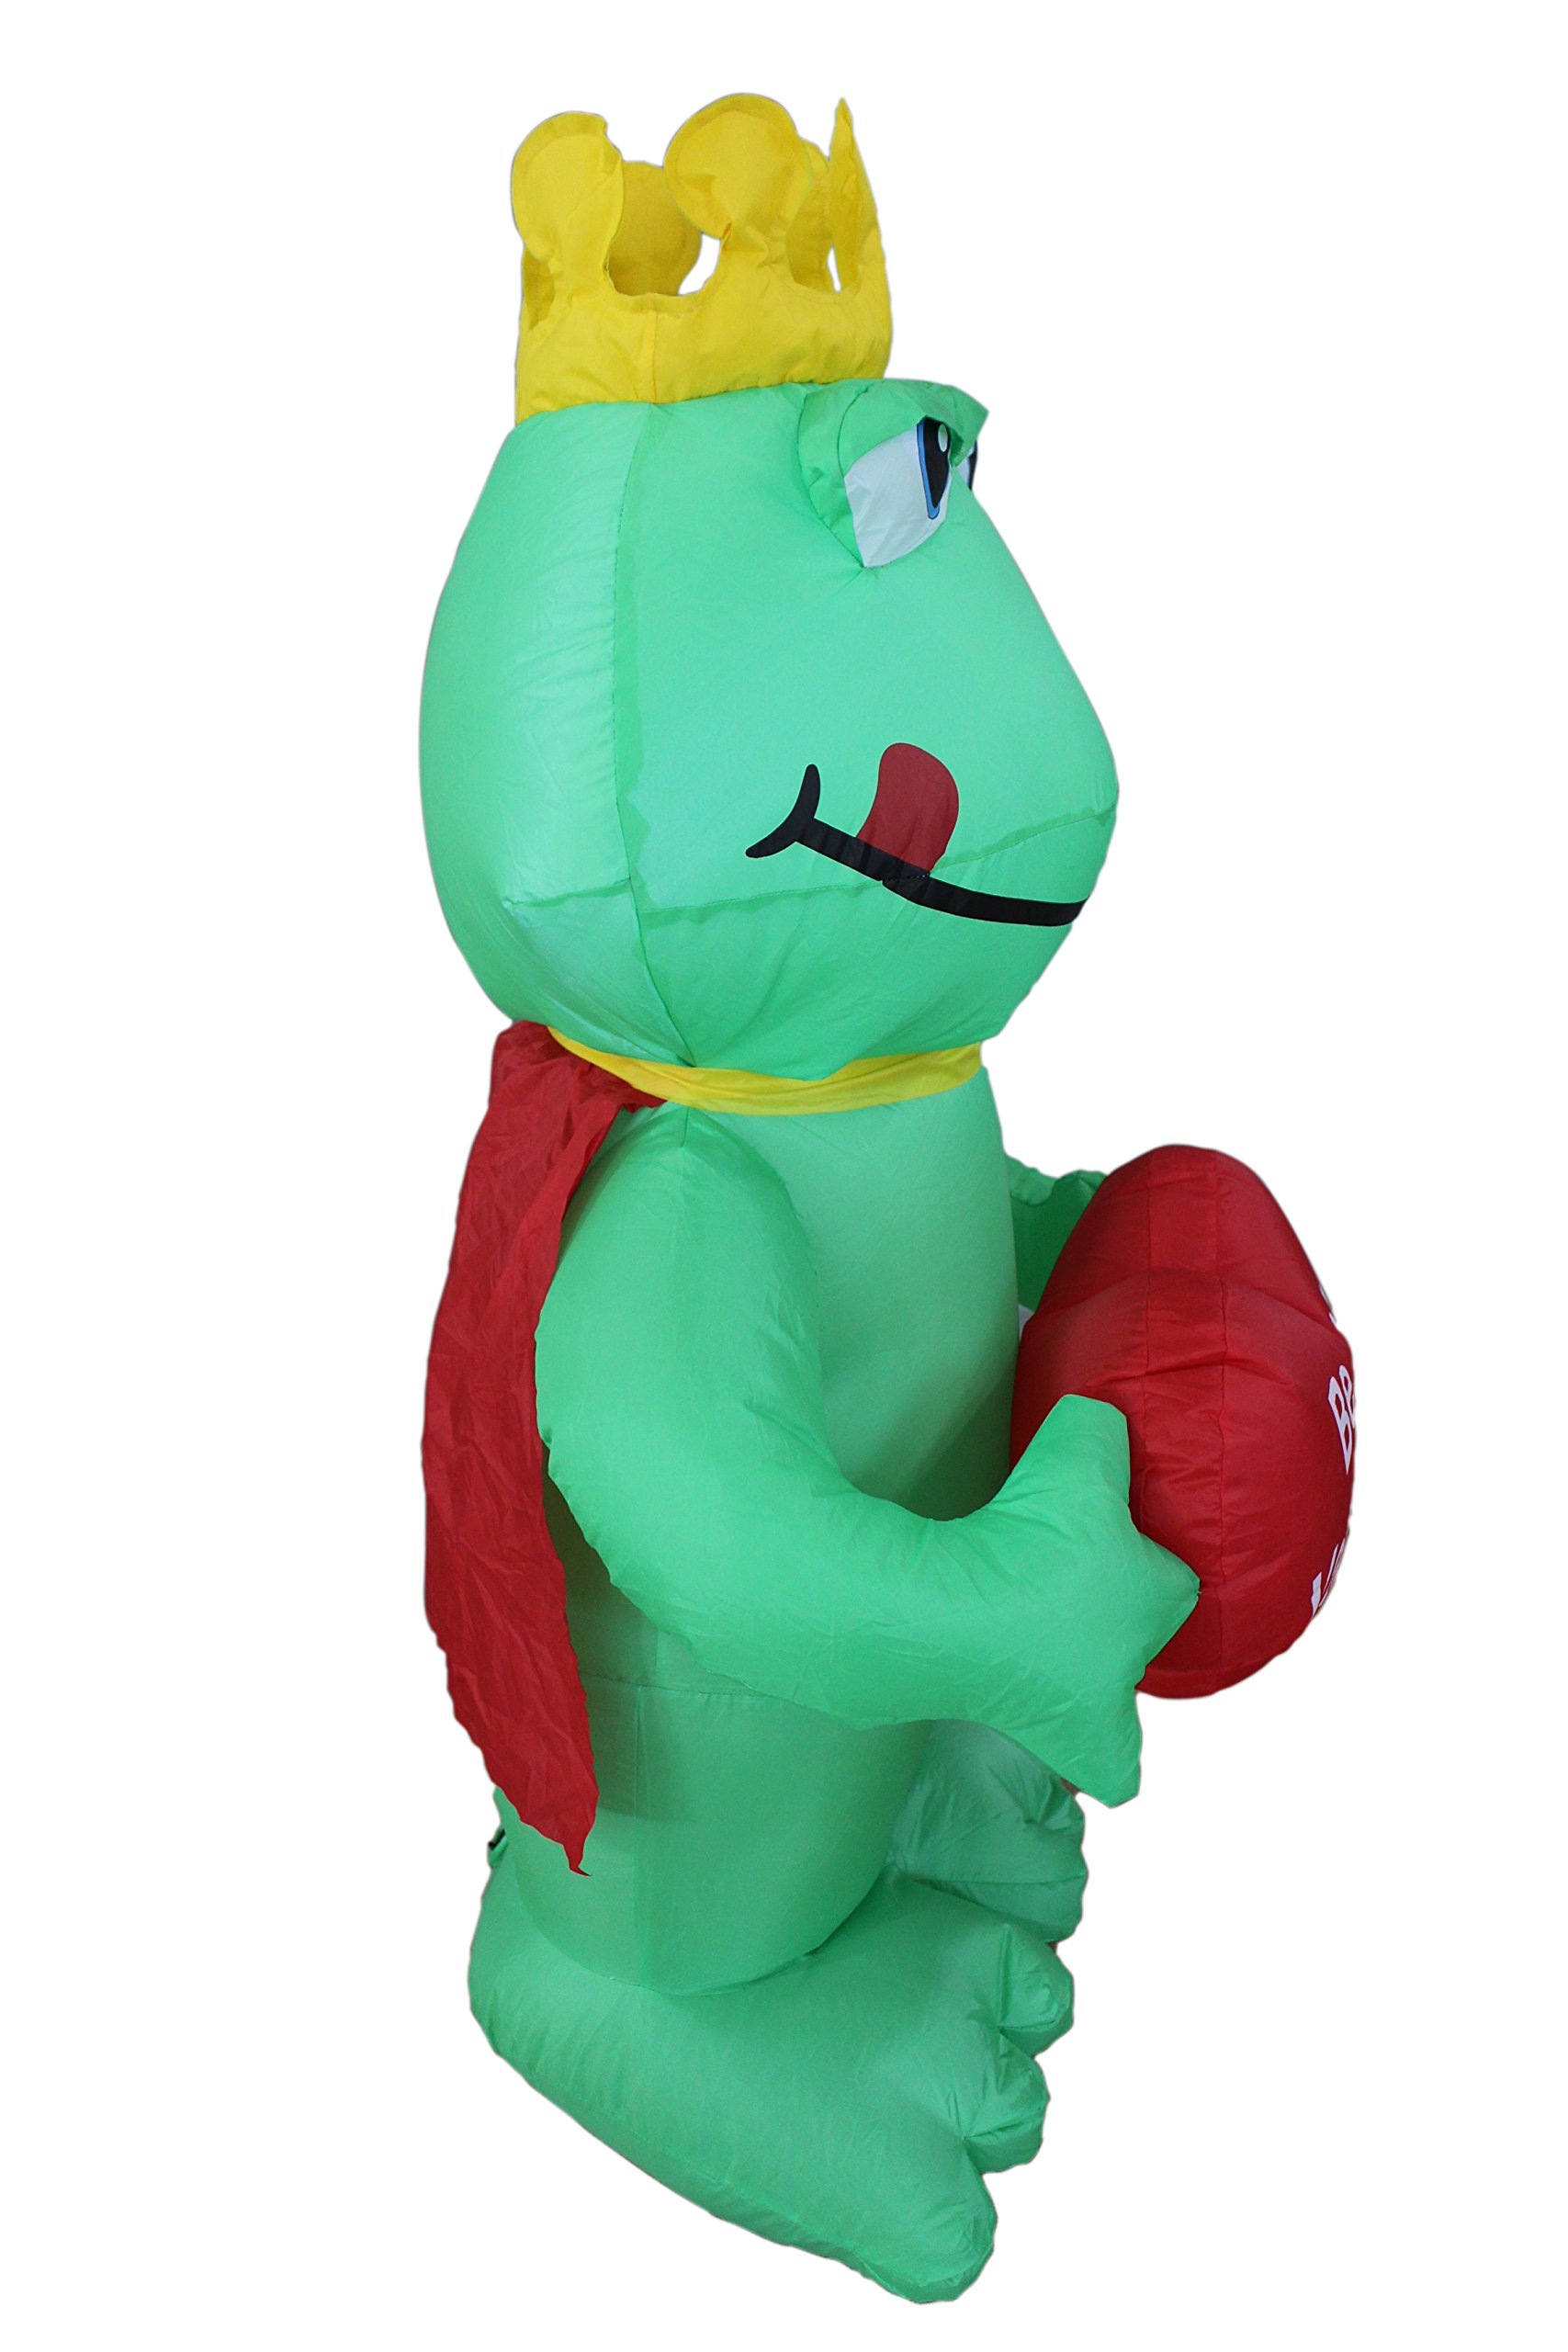 a23baa2f73649 4 Foot Valentine's Day Inflatable Frog King with Sweet Heart Yard ...